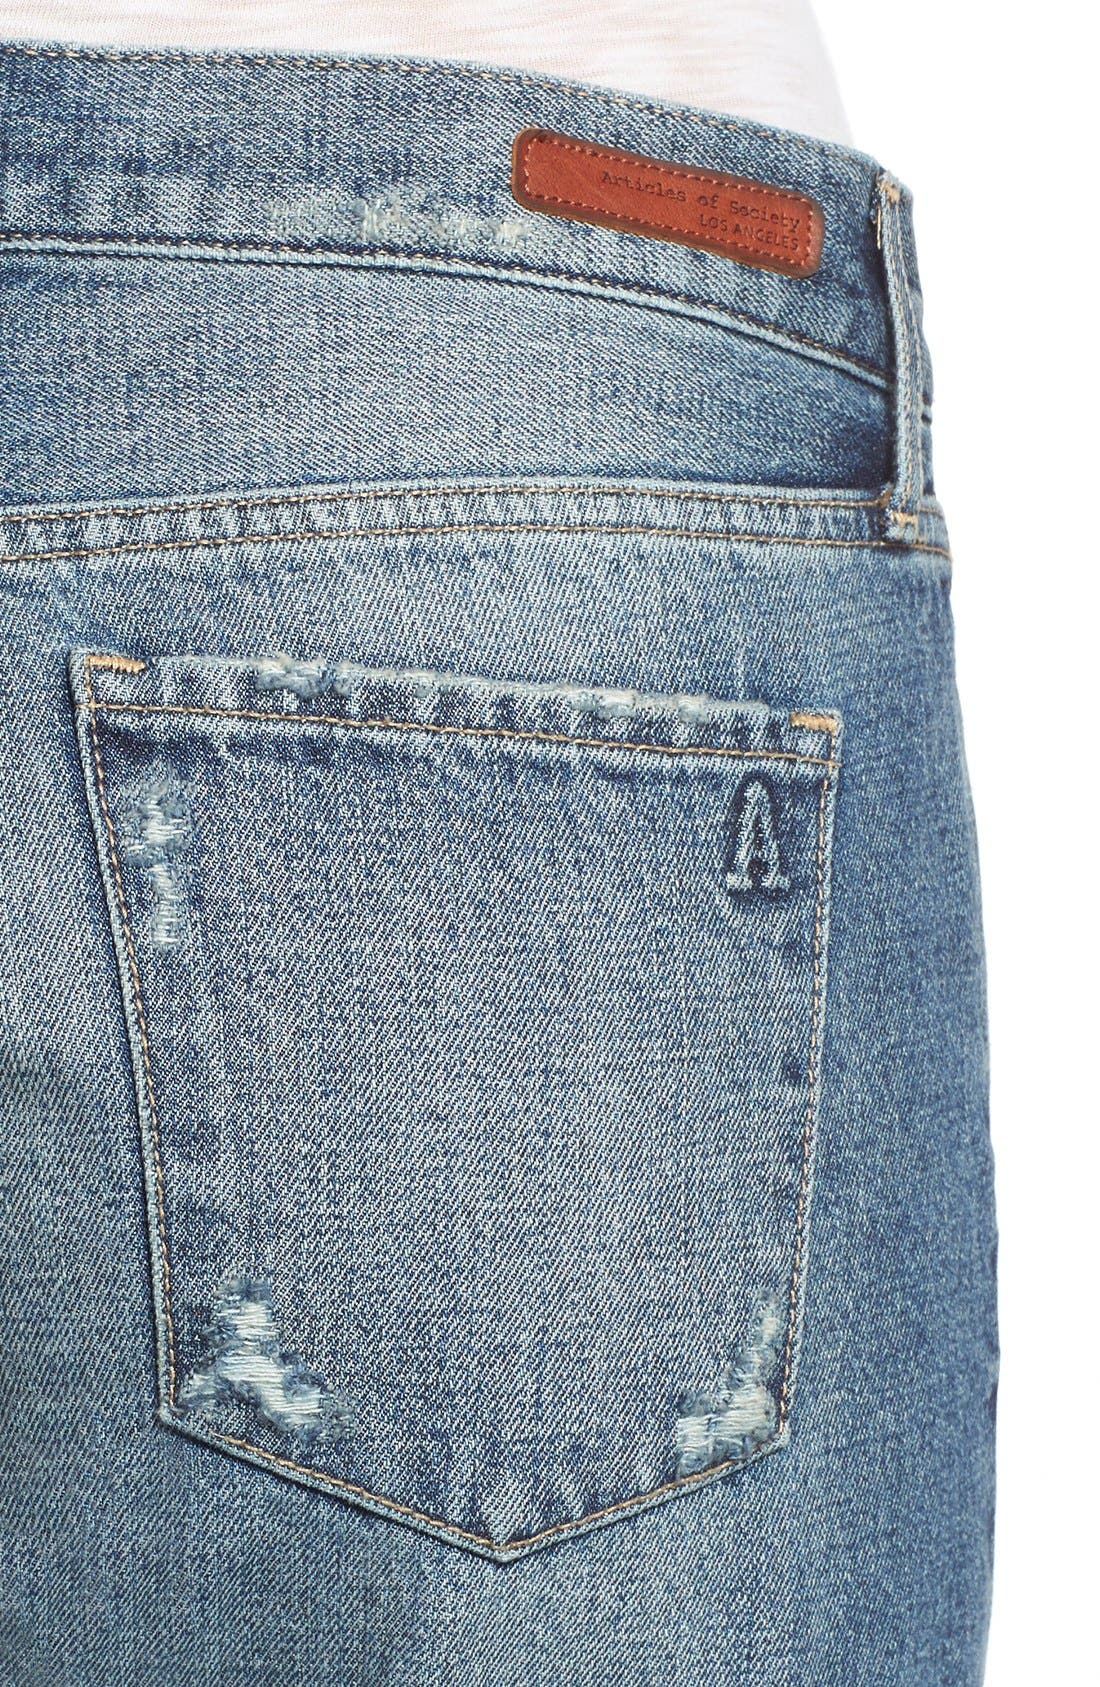 ARTICLES OF SOCIETY,                             'Janis' Destroyed Boyfriend Jeans,                             Alternate thumbnail 3, color,                             408